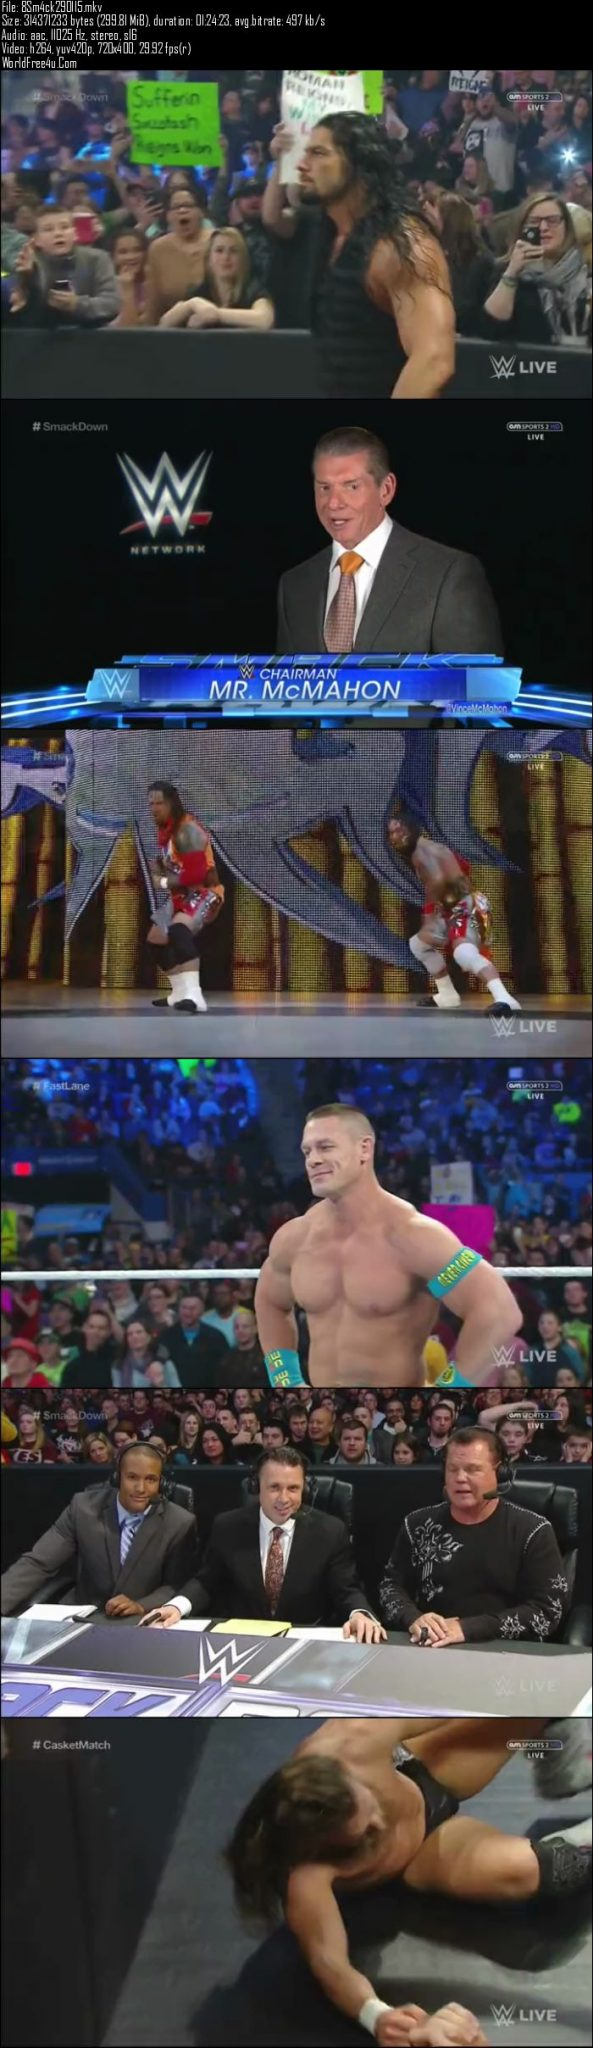 WWE Thursday Night SmackDown 29th January (2015)